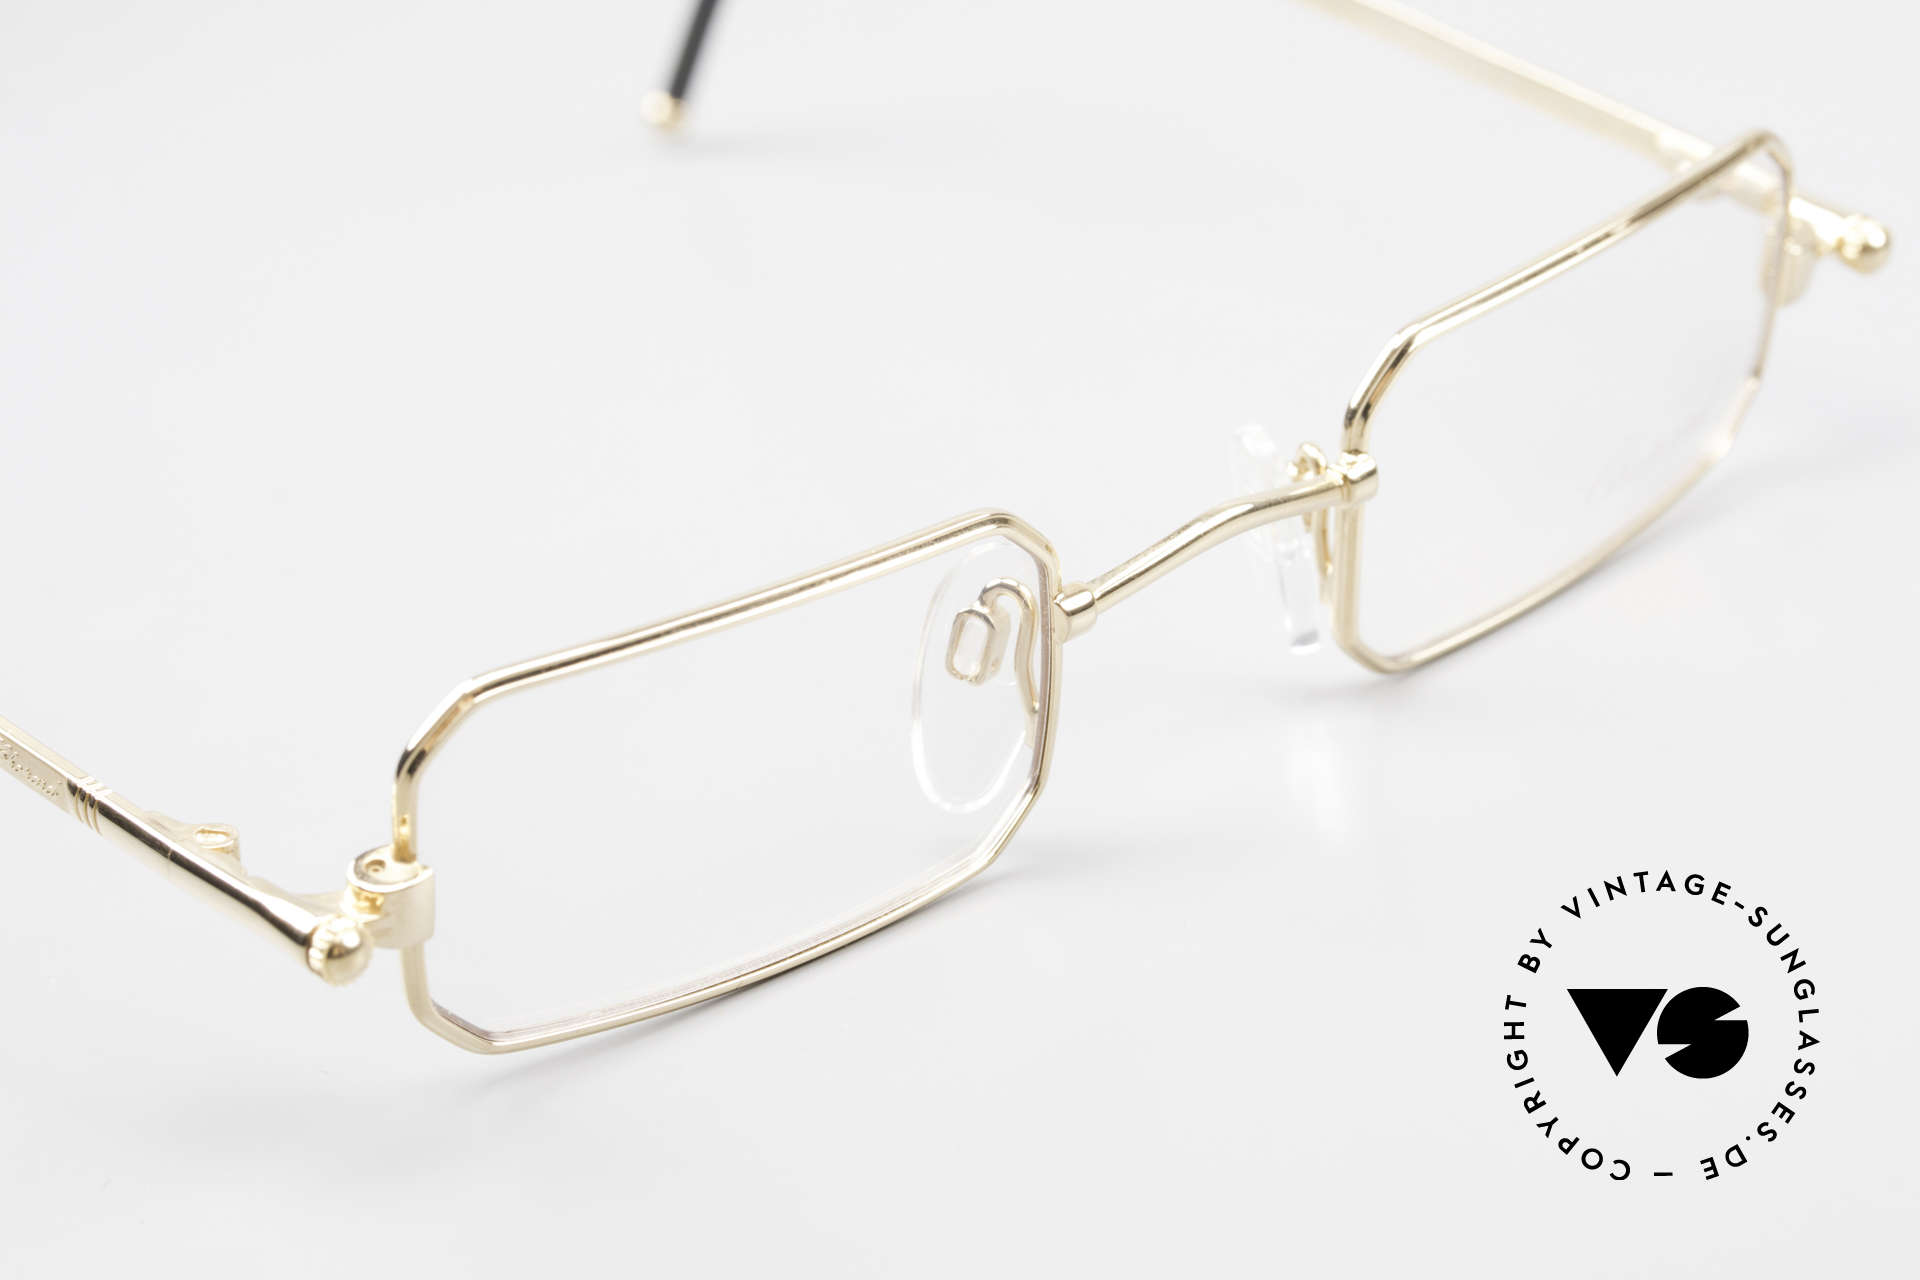 Chopard C002 Octagonal Luxury Eyeglasses, new old stock (like all our rare vintage eyeglasses), Made for Men and Women